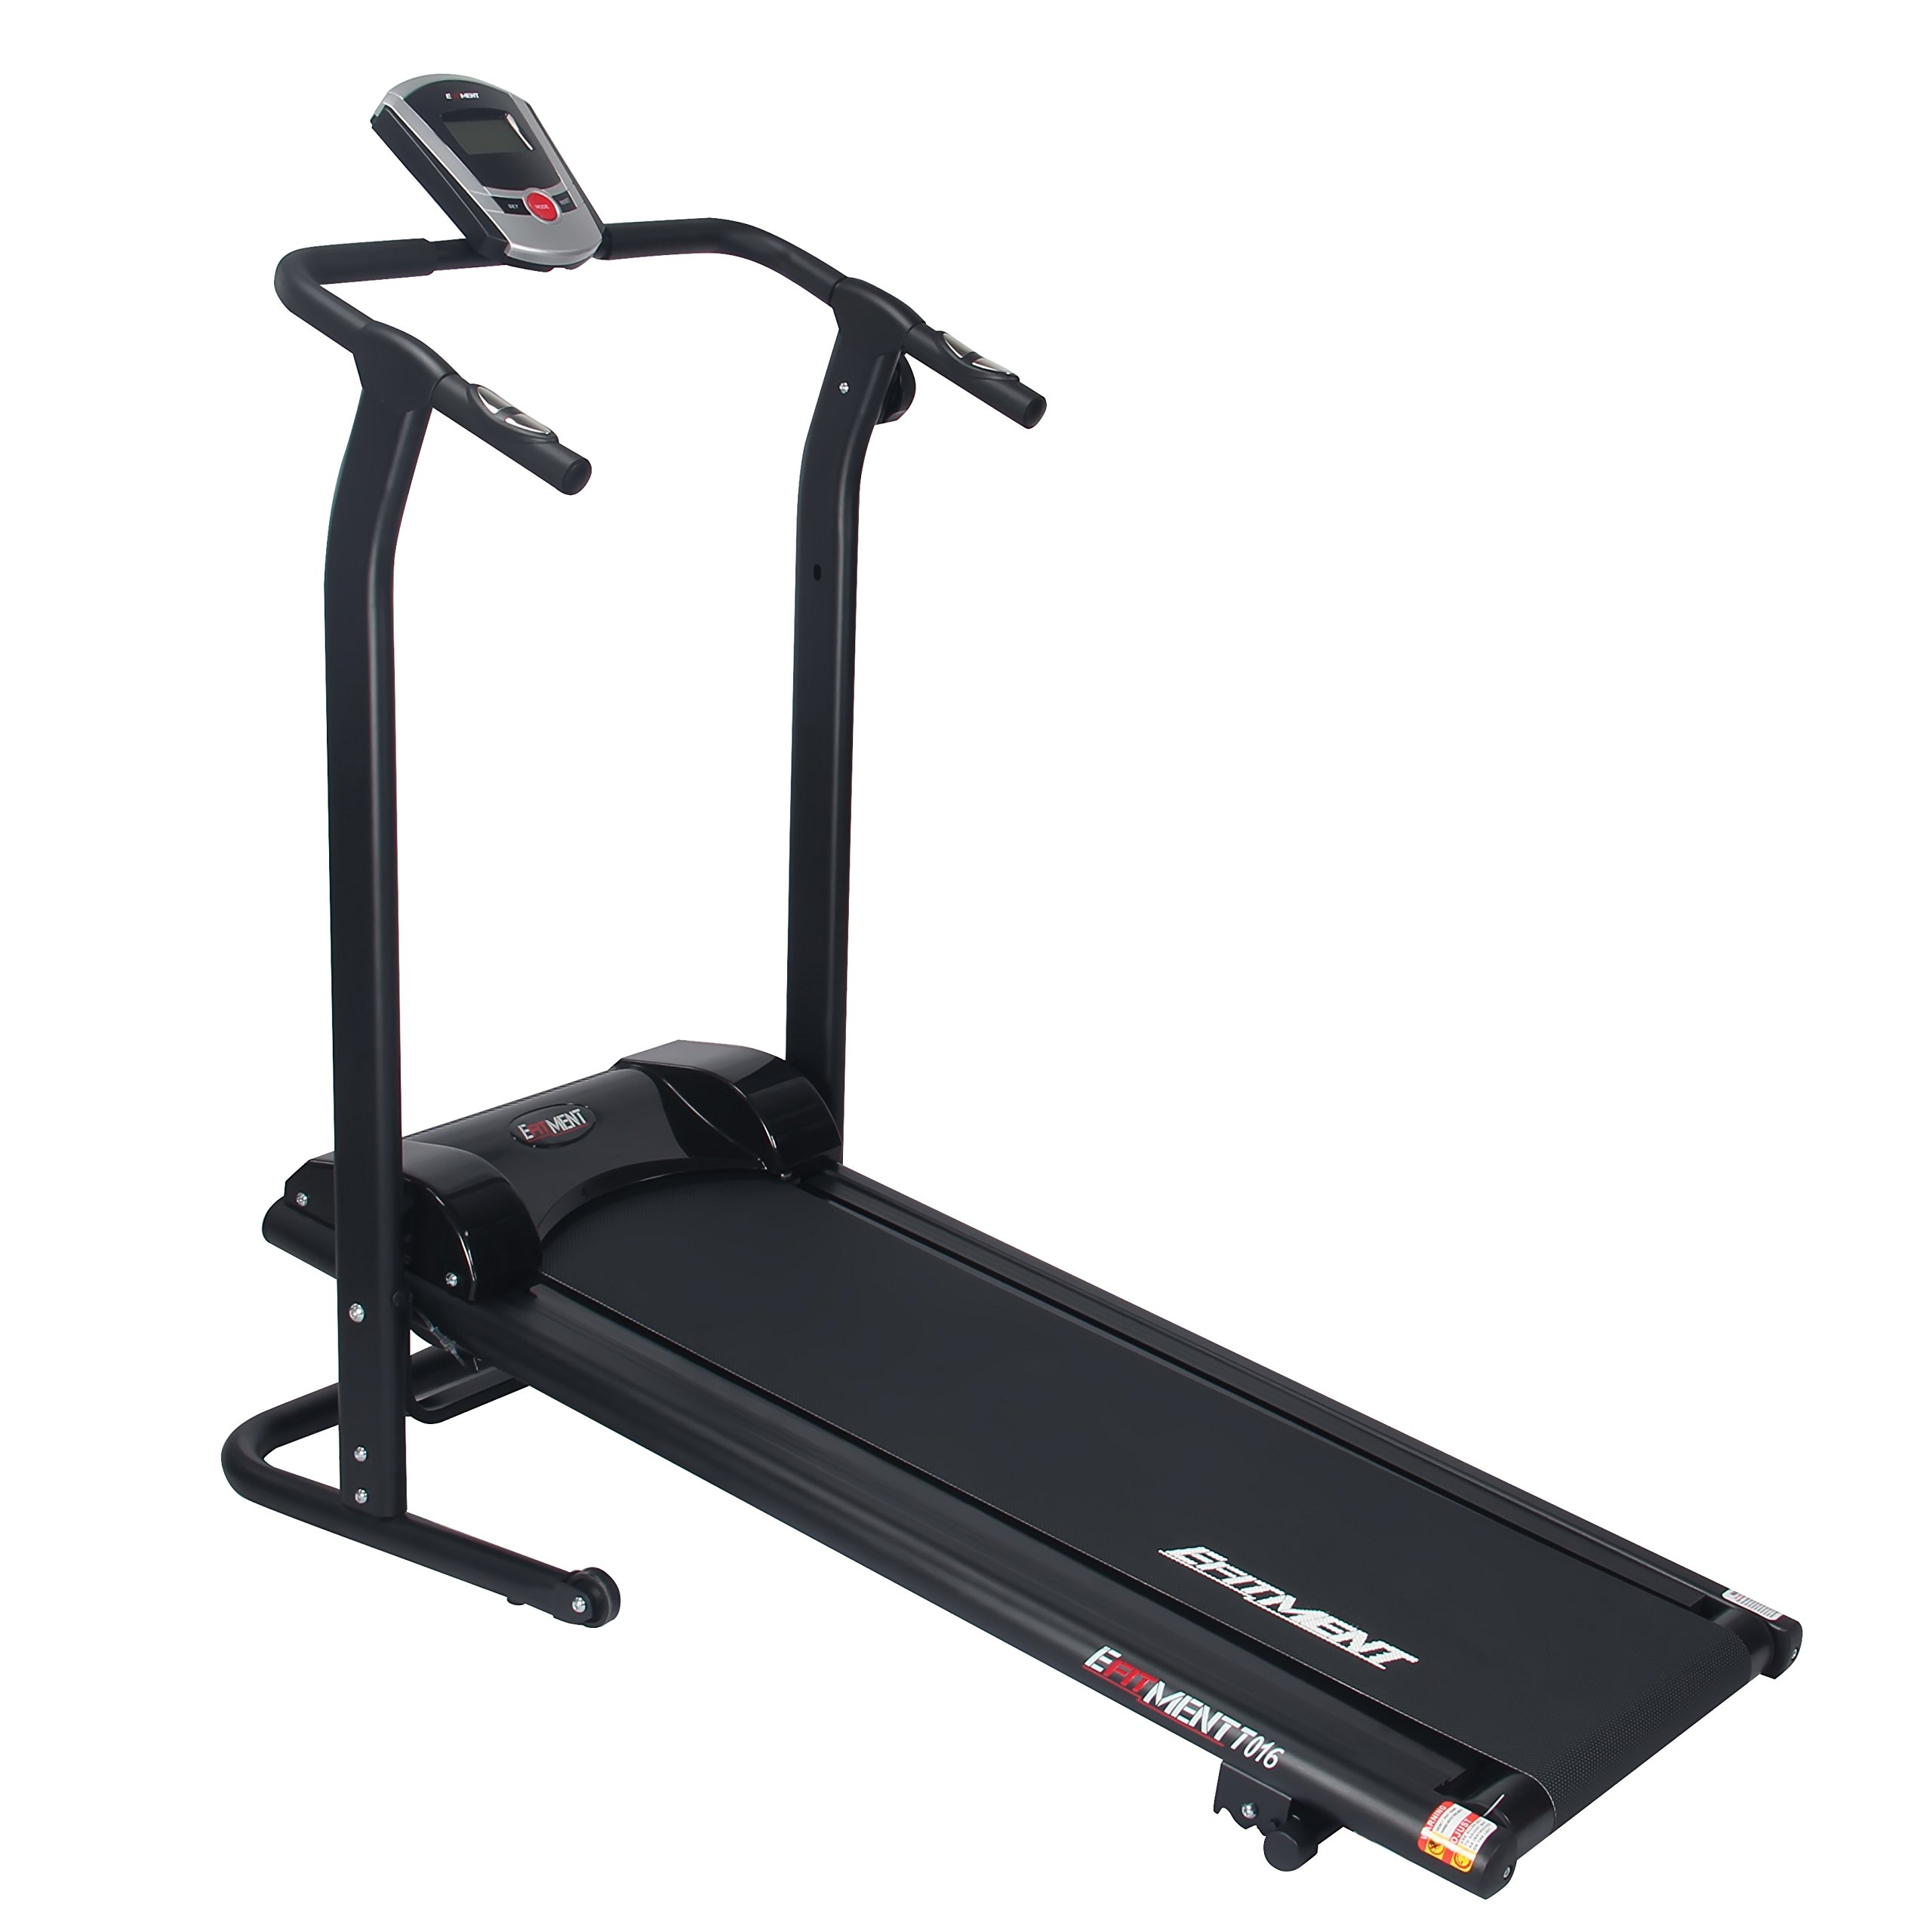 EFITMENT Adjustable Incline Magnetic Manual Treadmill w/Pulse Monitor by T016